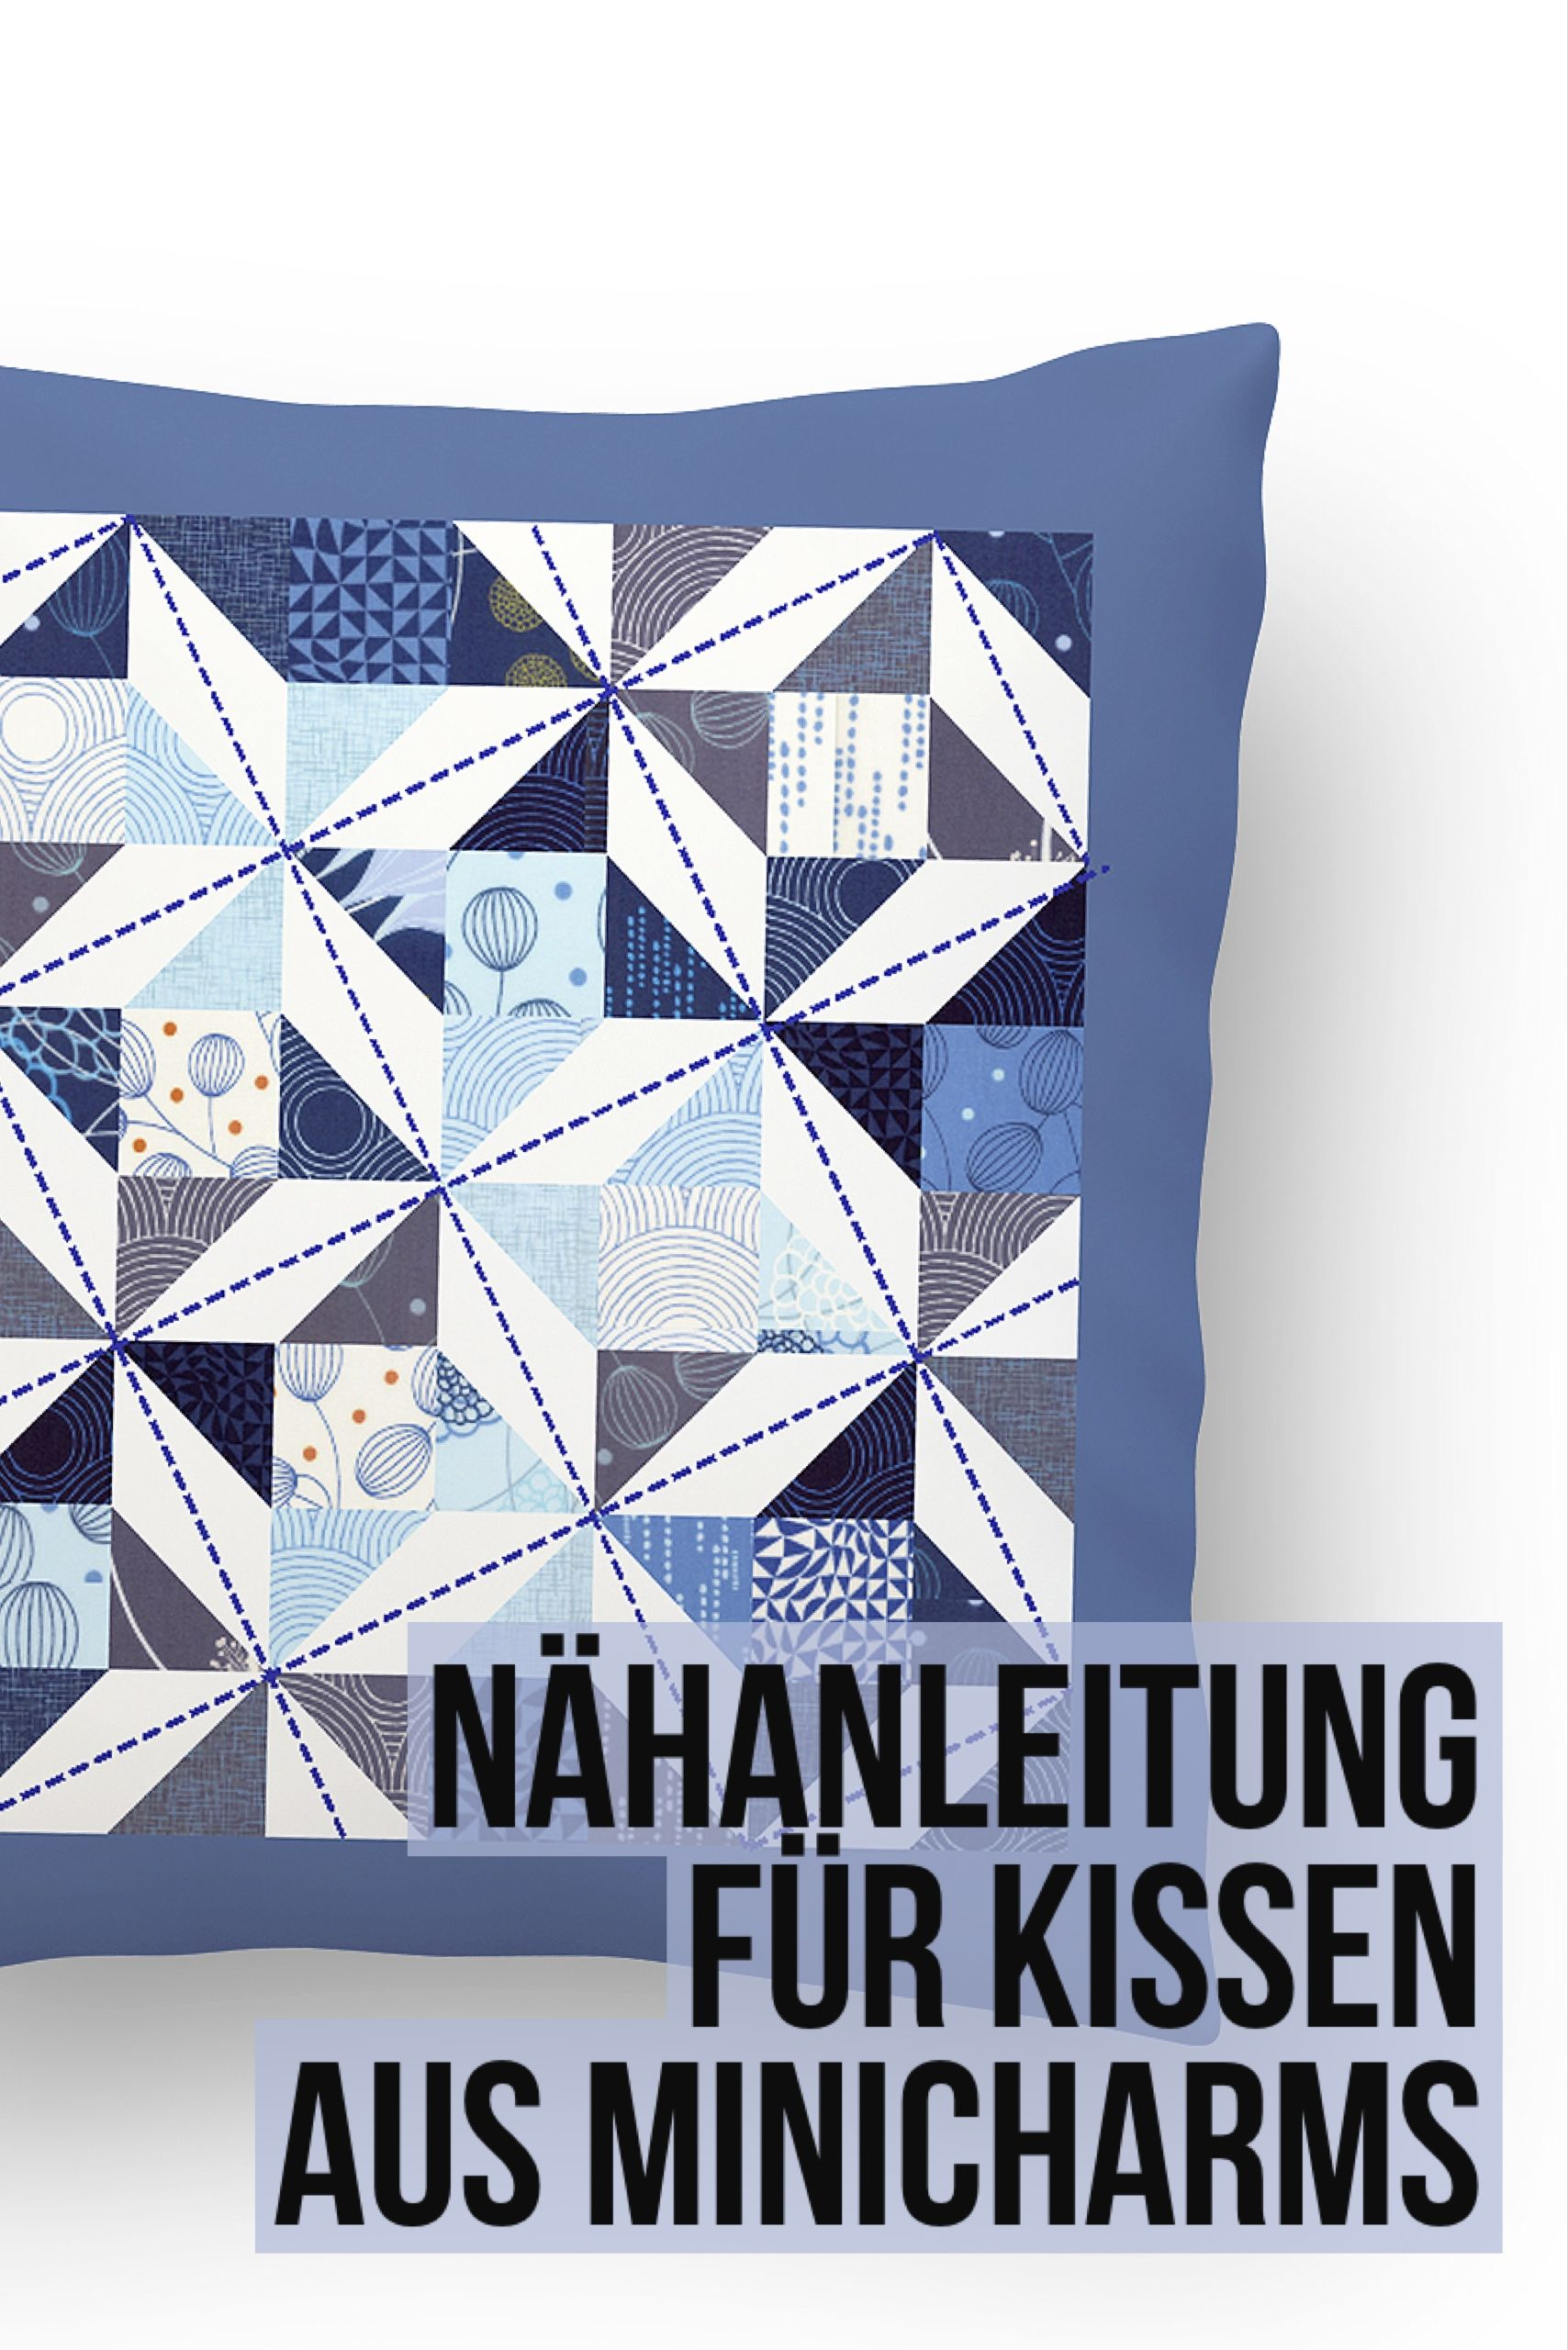 kissen aus minicharms mit n hanleitung stoffe true blue zen chic ideas pinterest kissen. Black Bedroom Furniture Sets. Home Design Ideas